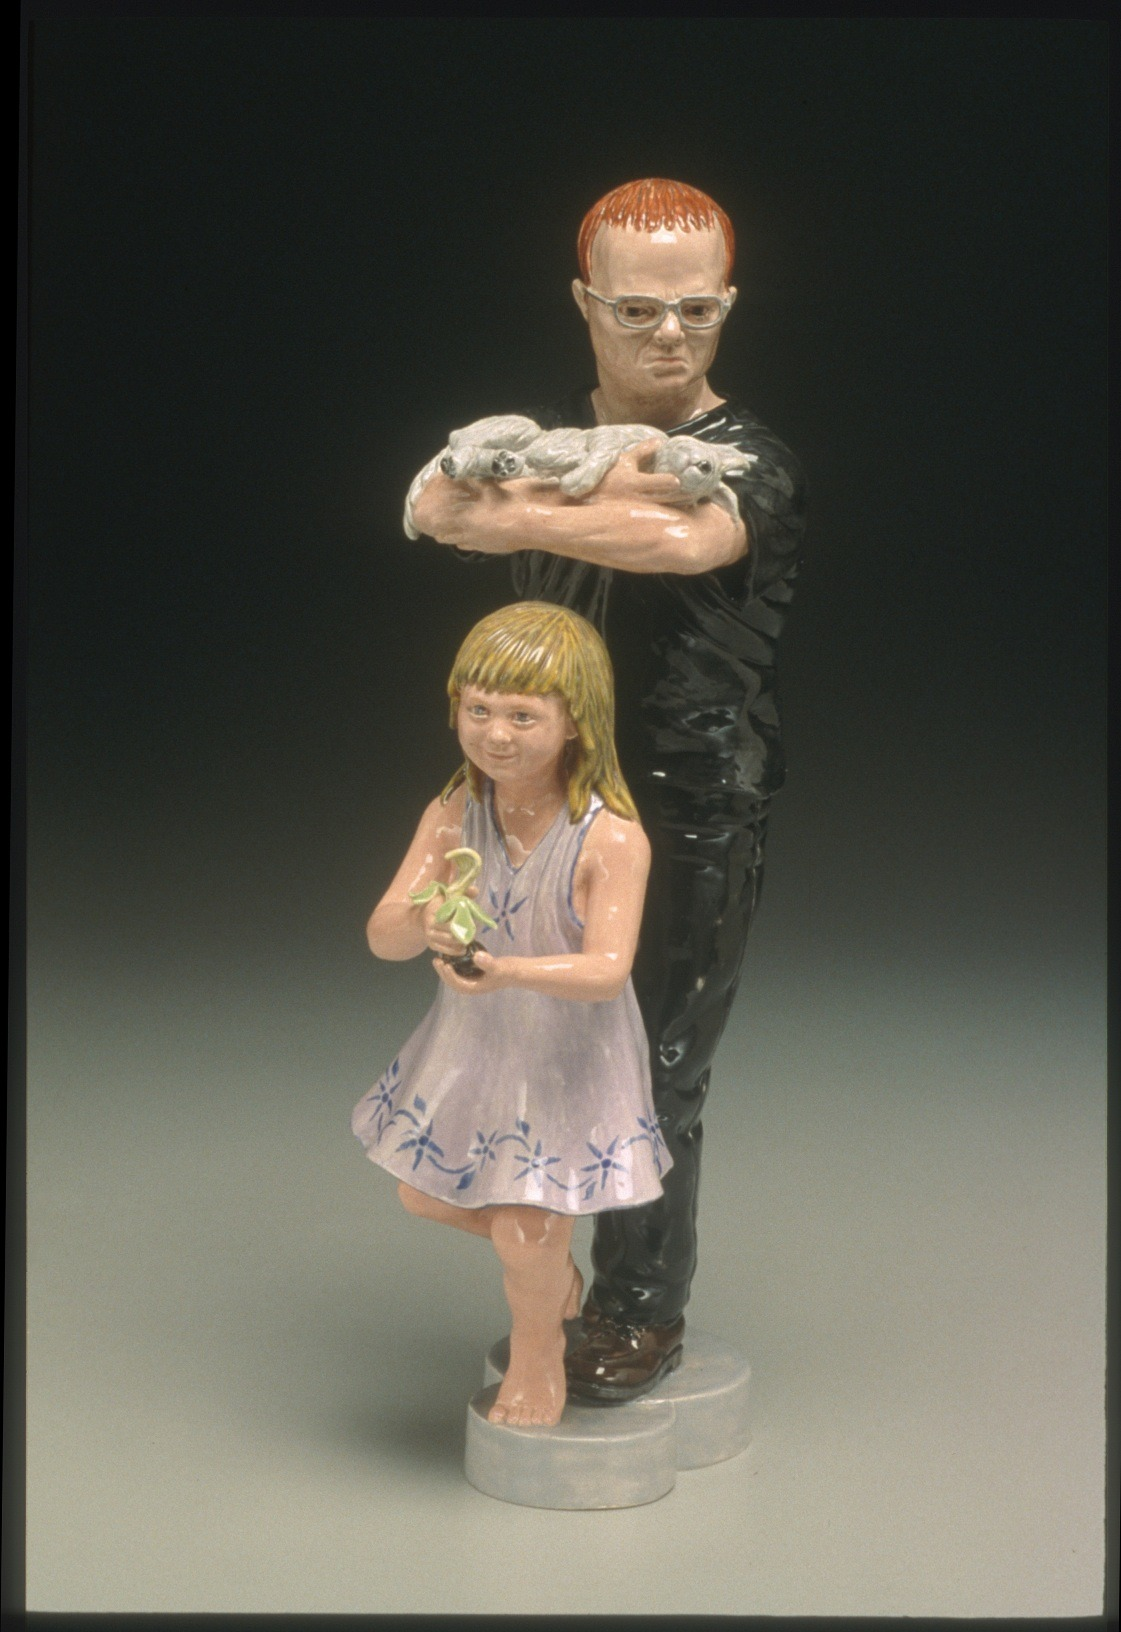 "RUSSELL BILES;""Son of a Bitch"";1998;hand built earthenware;h9"", photo Tim Barnwell."